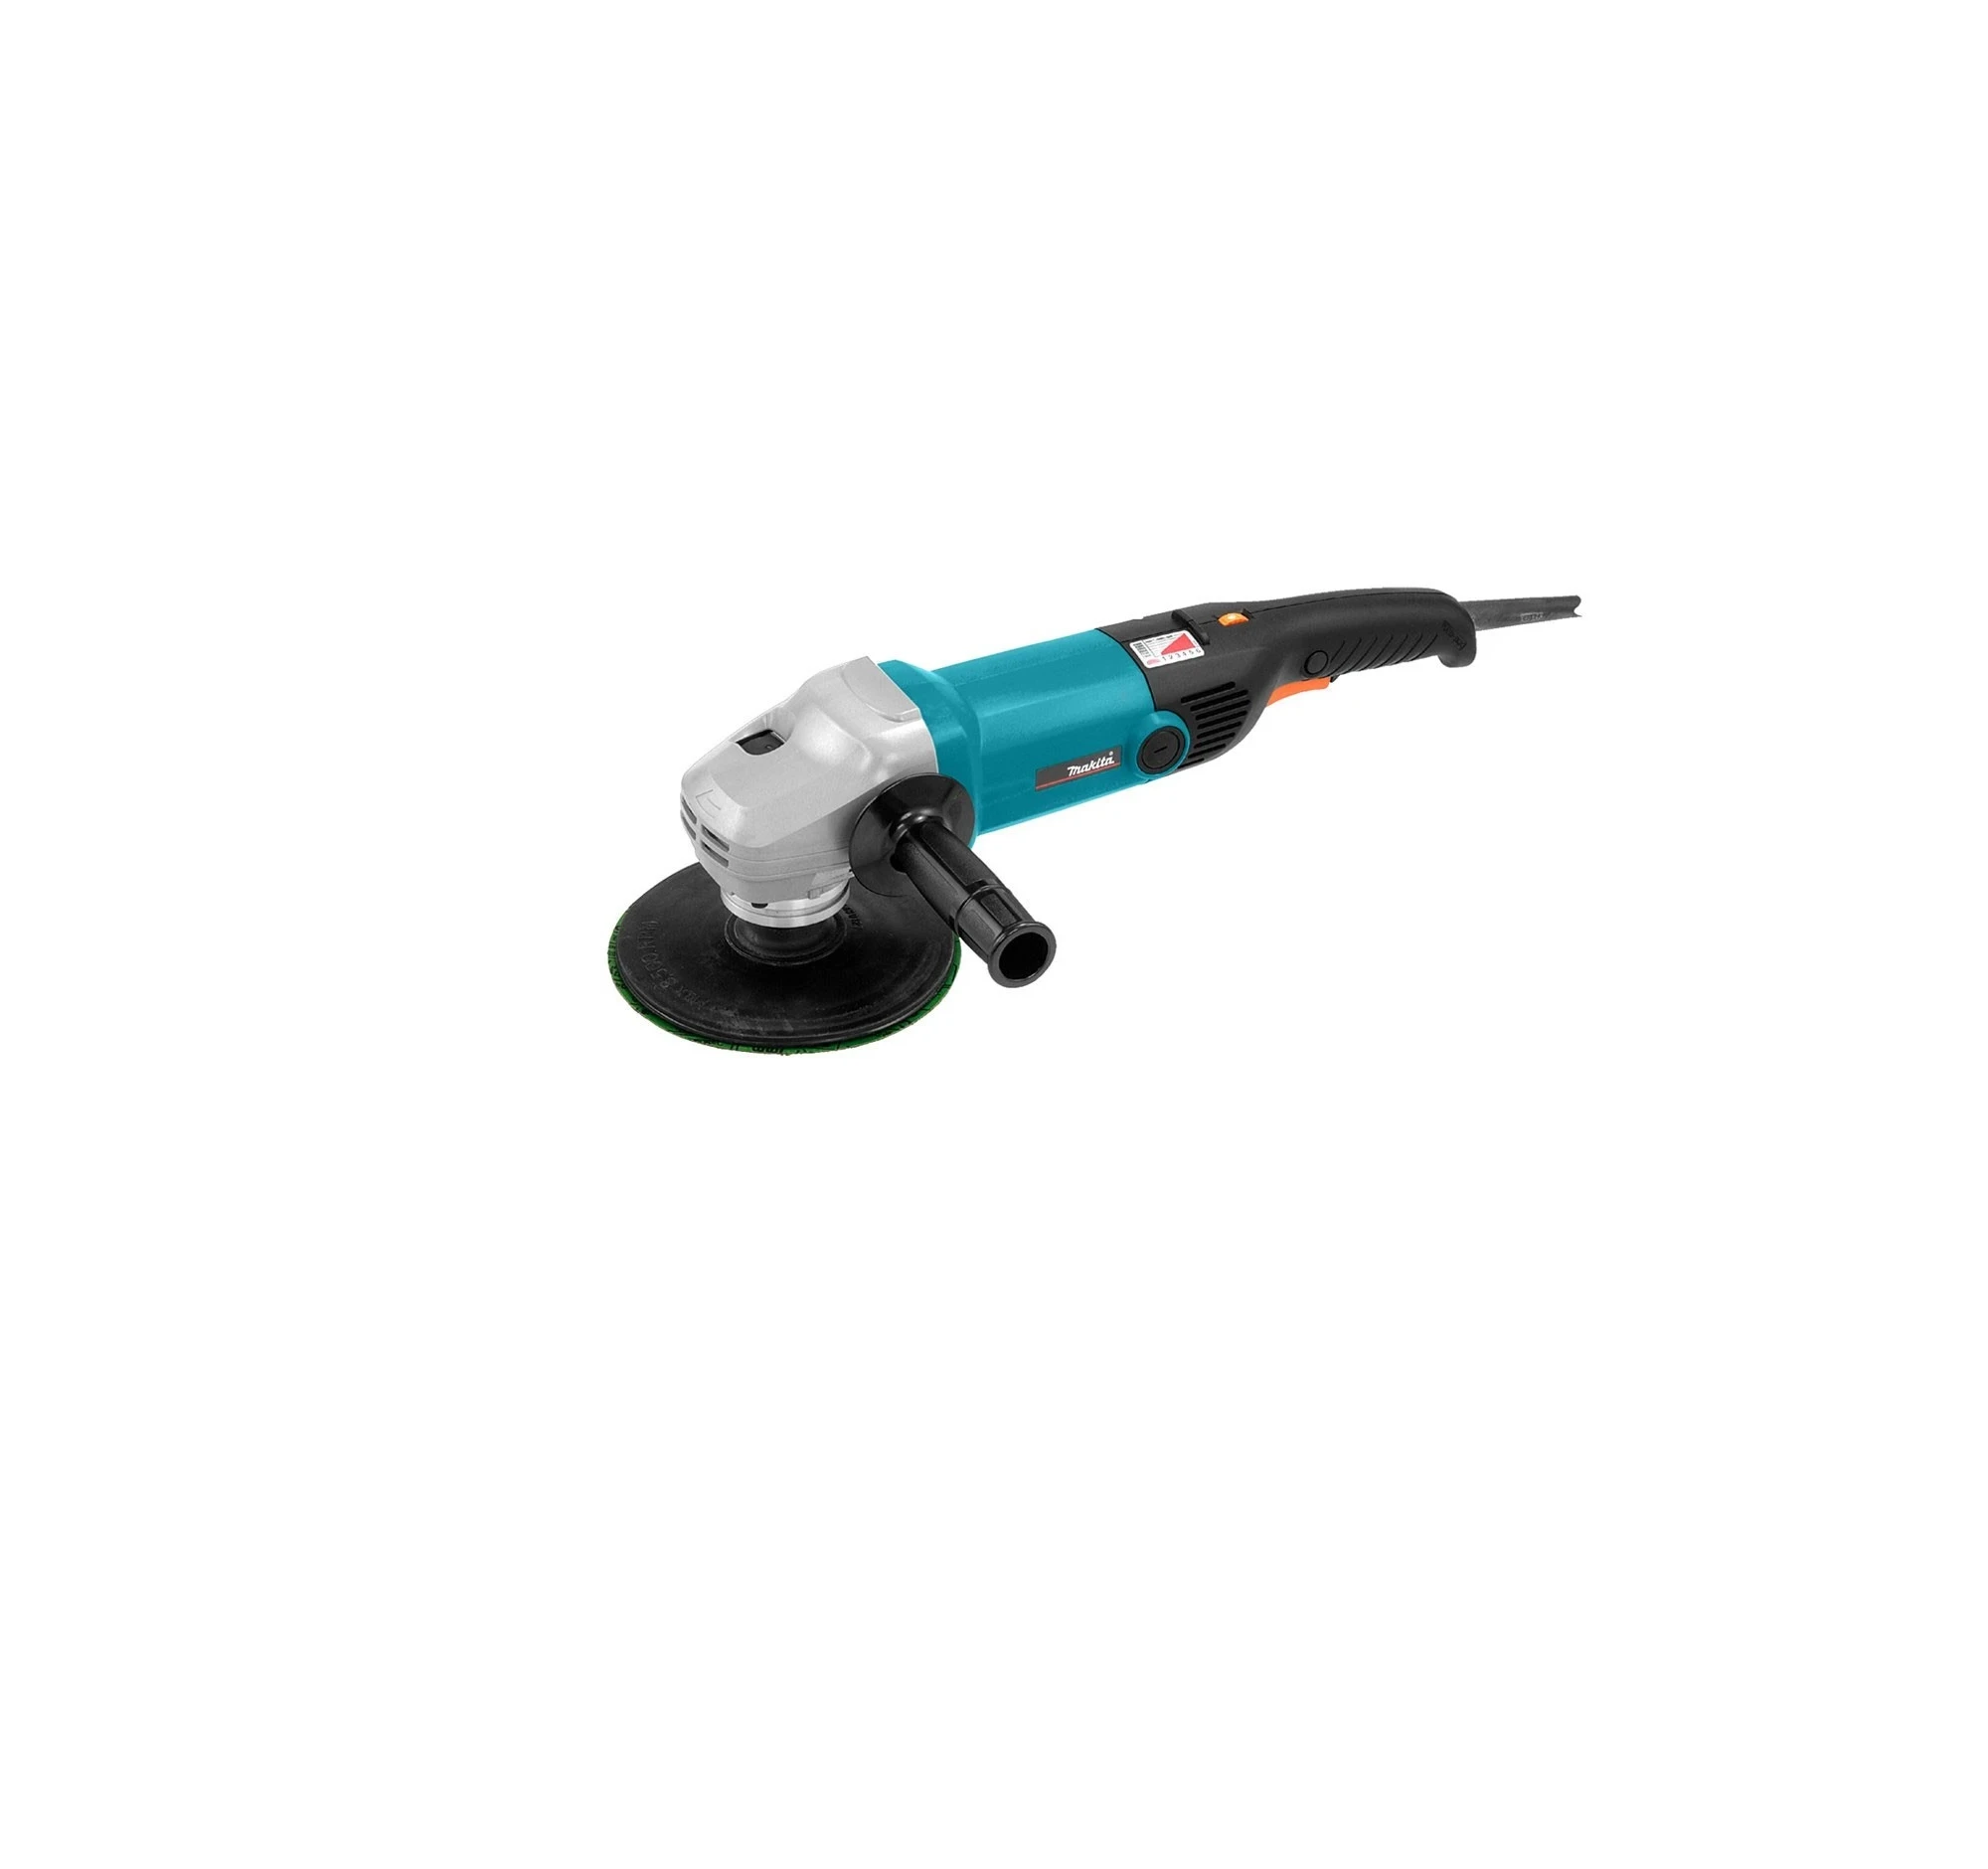 180 MM Makita Angle Sander